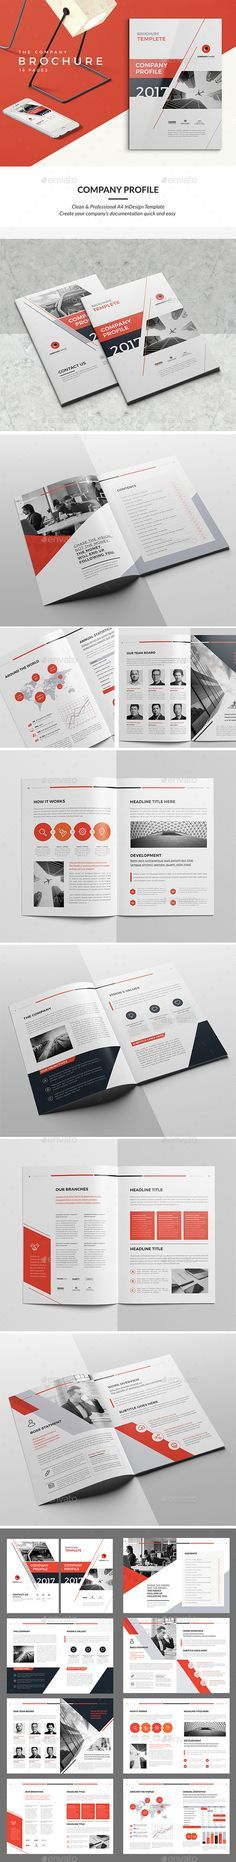 Get an attractive trifold or bifold brochure design skype - format of company profile